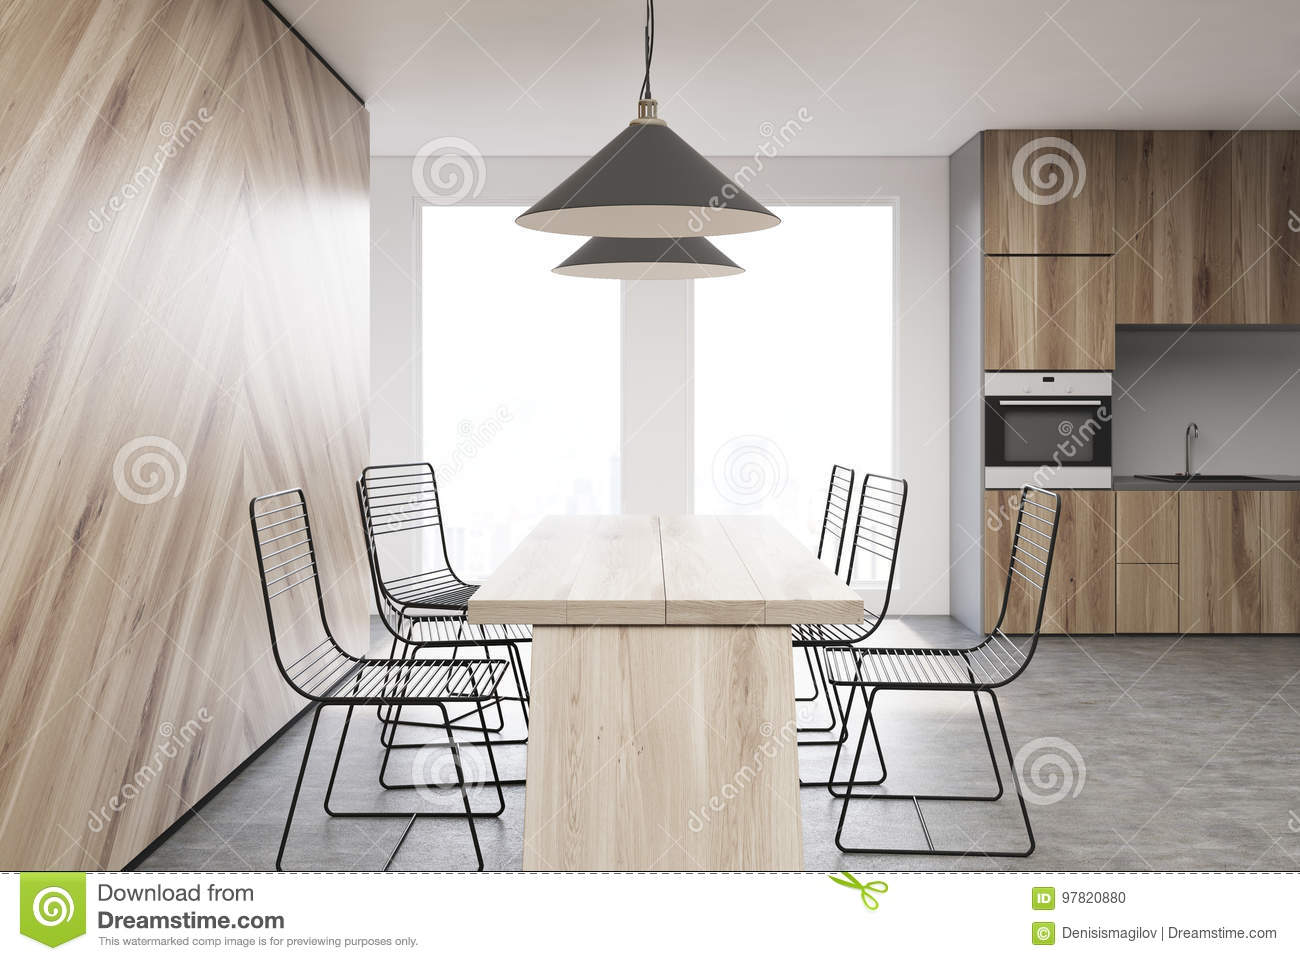 Wooden Kitchen Interior, Side View Stock Illustration - Illustration ...